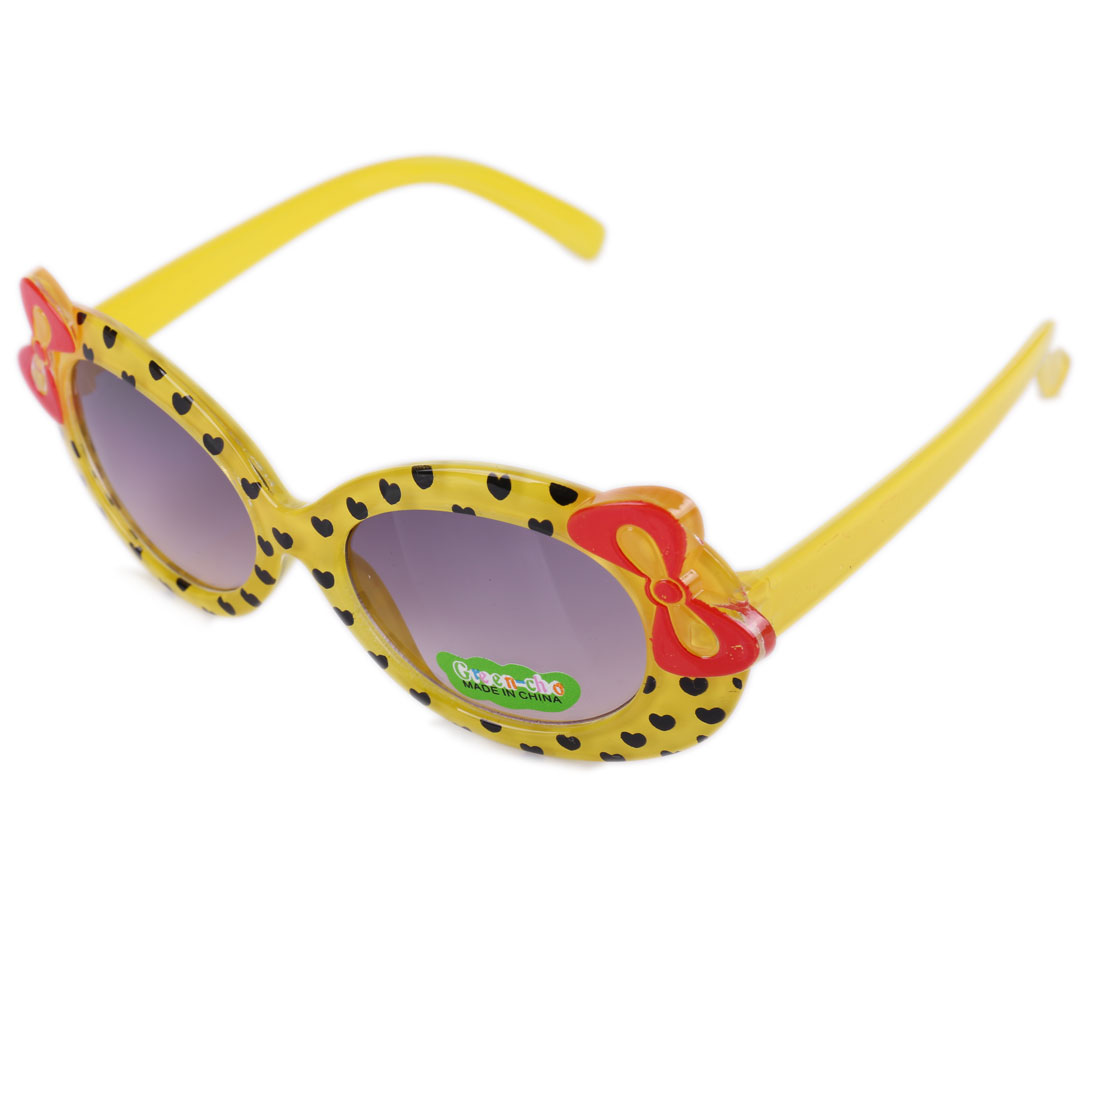 Fashion Girls Sweet Bowk Embellished Plastic Sunglasses Yellow